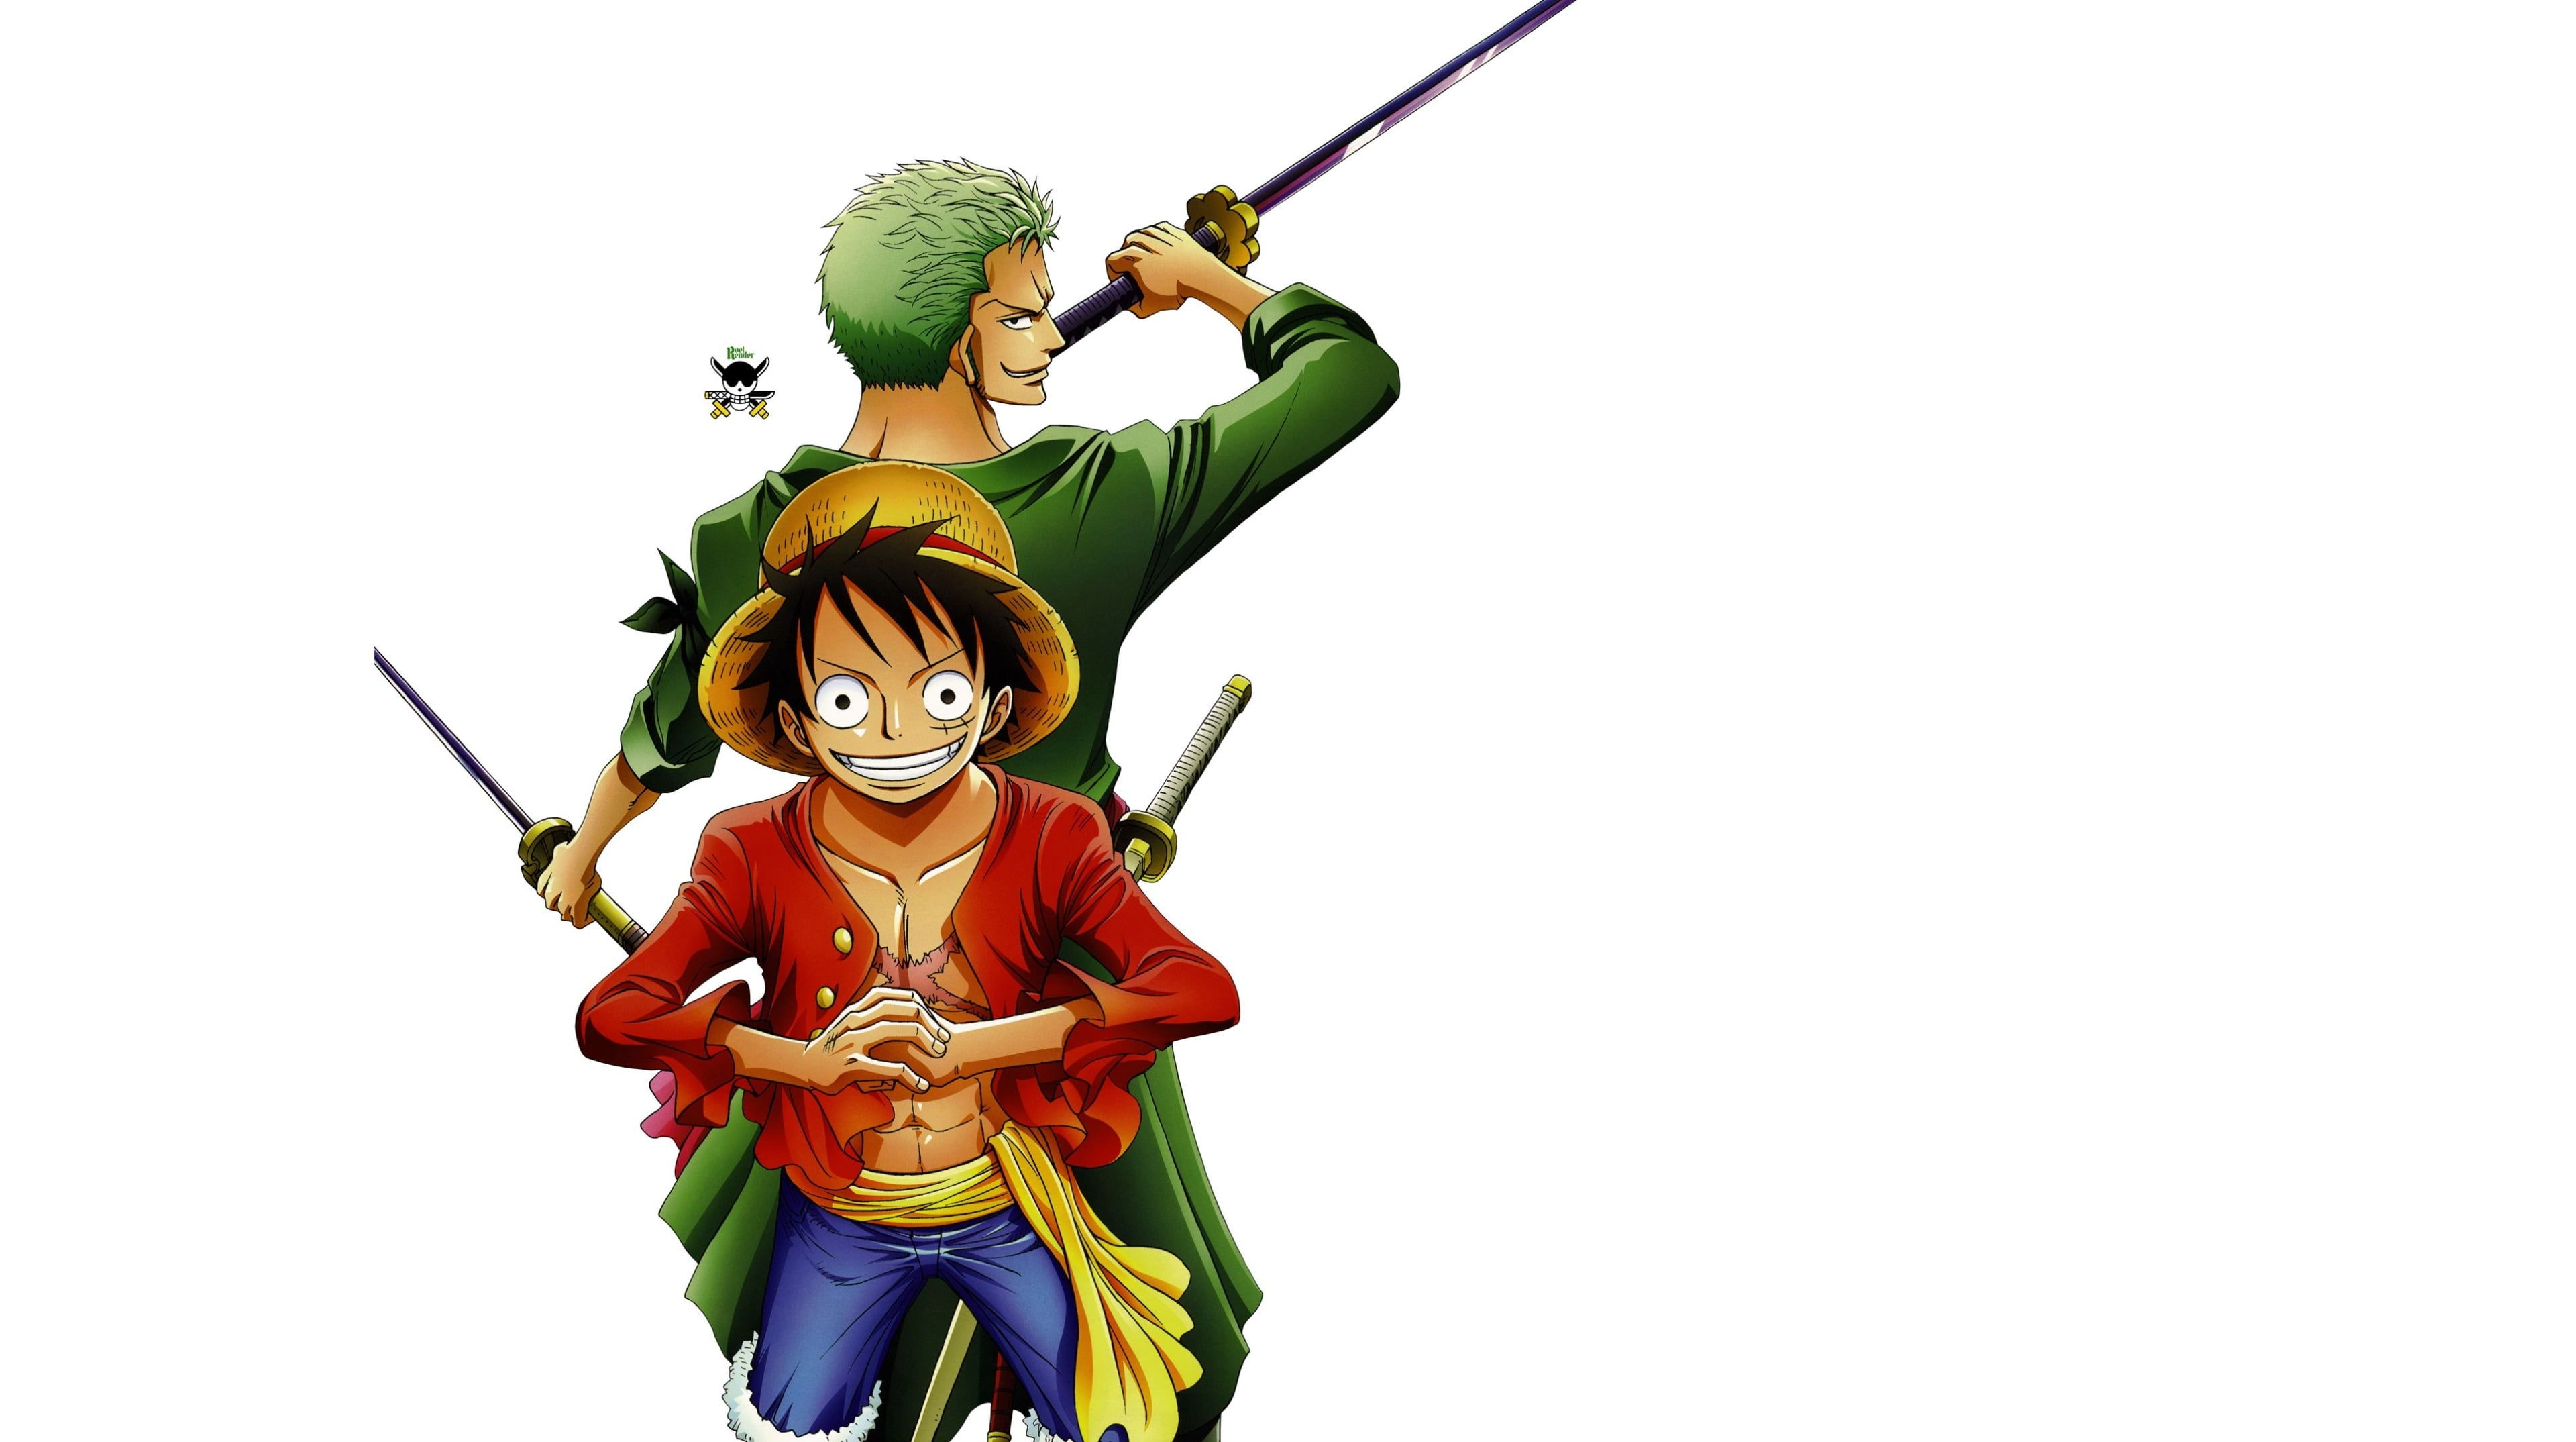 One Piece 4k Free Desktop Wallpaper 4k Wallpaper Hdwallpaper Desktop Free Desktop Wallpaper One Piece Wallpaper Iphone Desktop Wallpaper